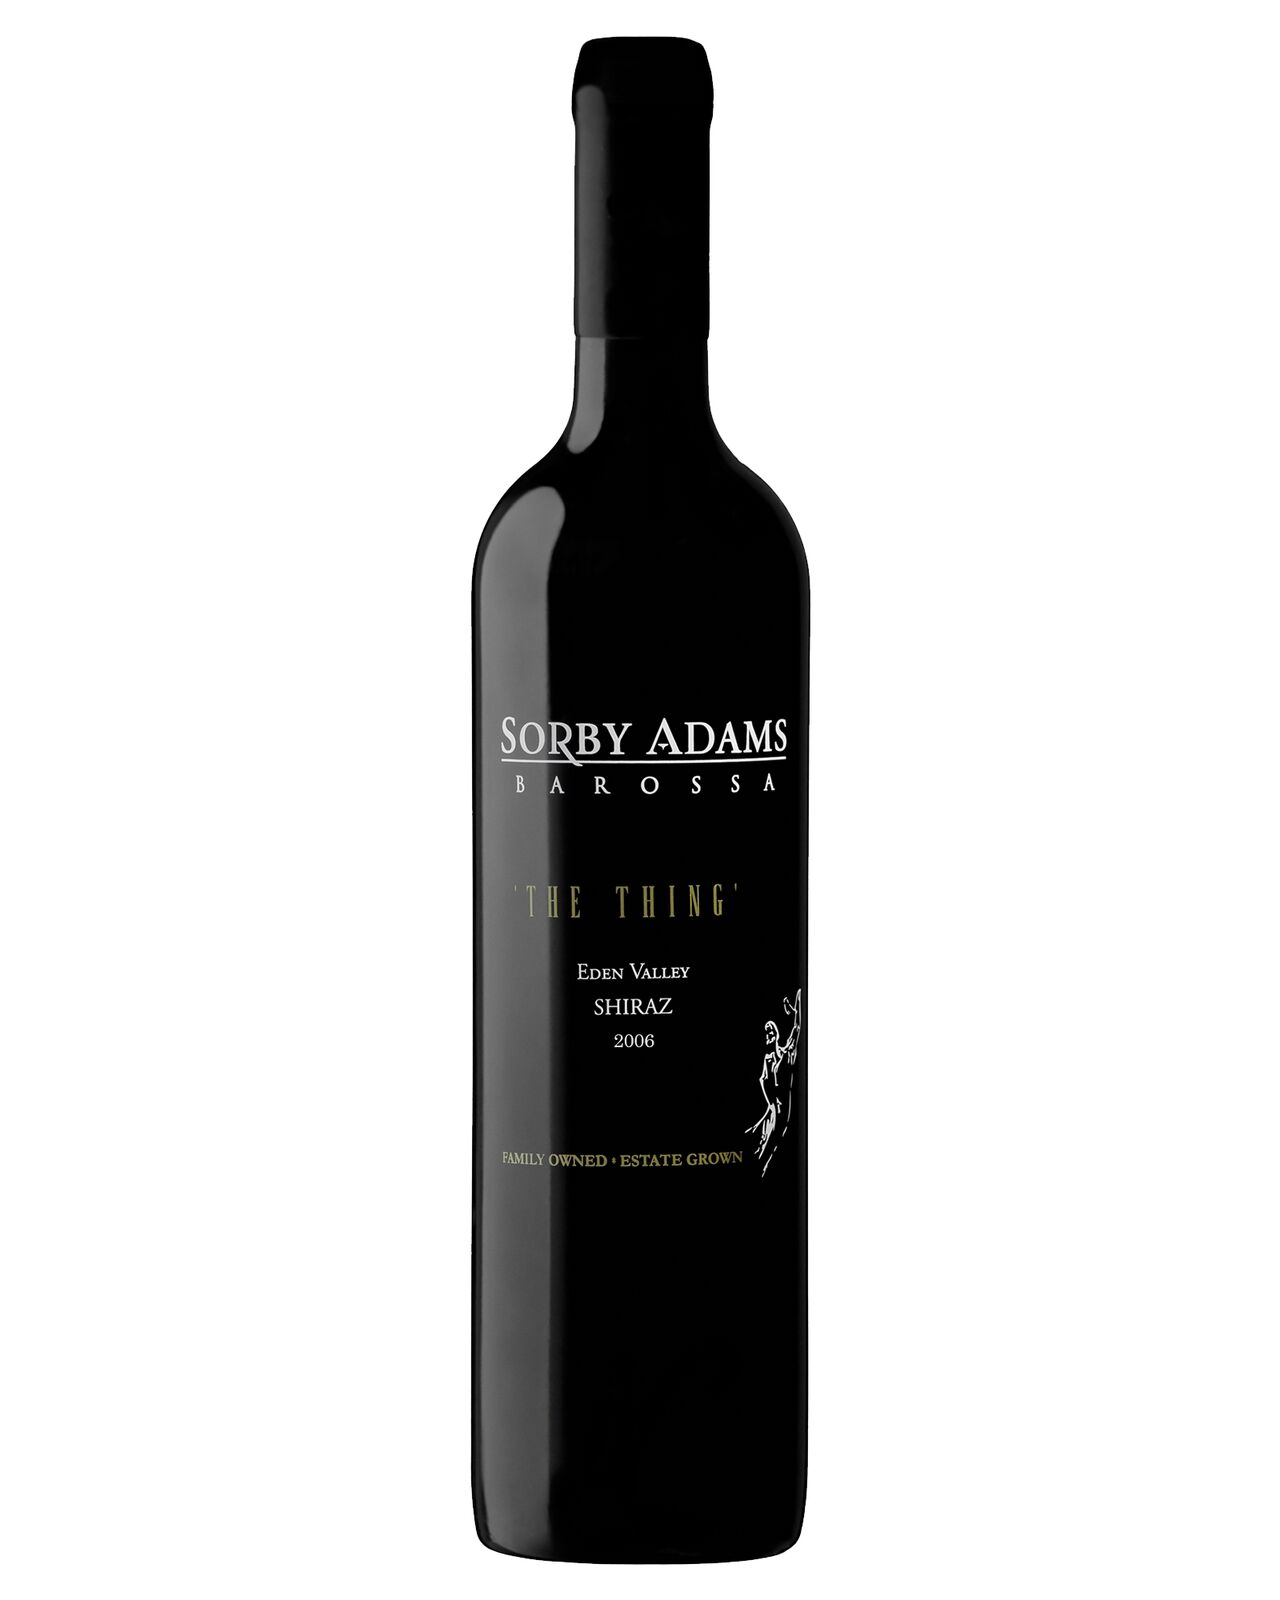 Sorby Adams The Thing Shiraz 2006 1.5L bottle Dry Red Wine